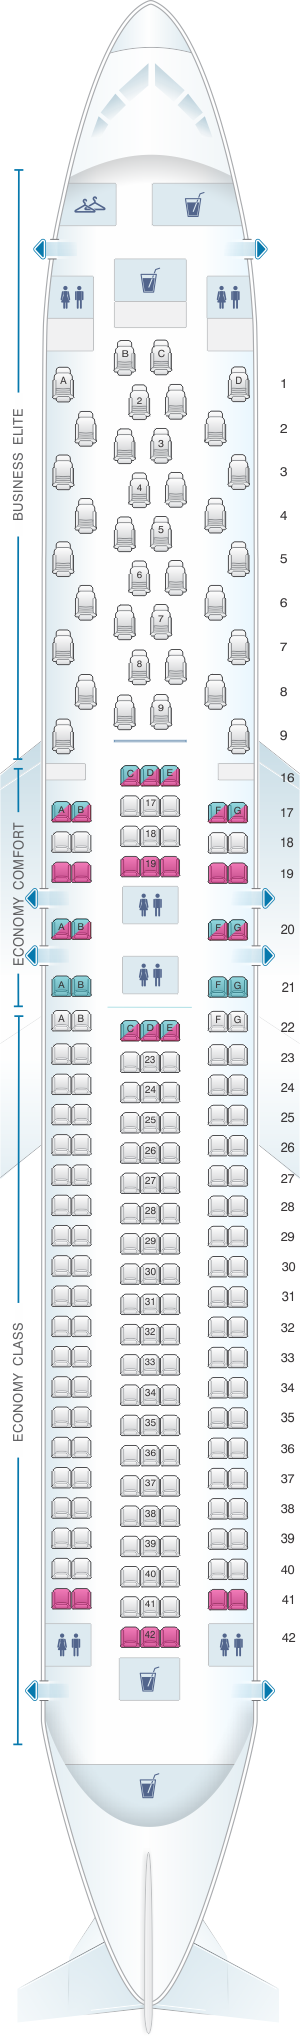 Seat map for Delta Air Lines Boeing B767 300ER (76L)